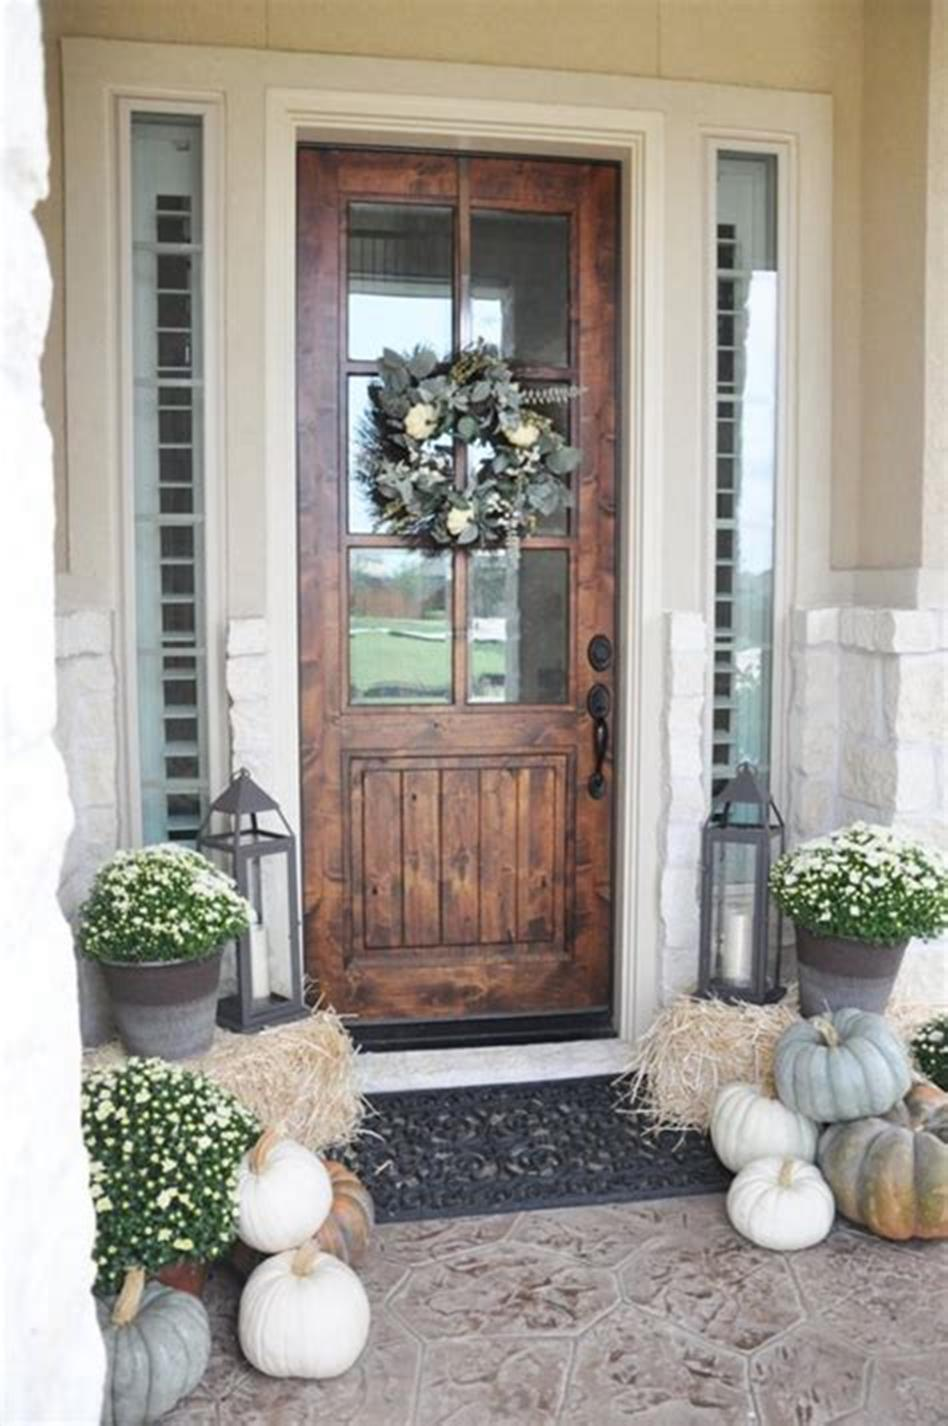 40 Beautiful Spring Front Porch Decorating Ideas You Will Love 5